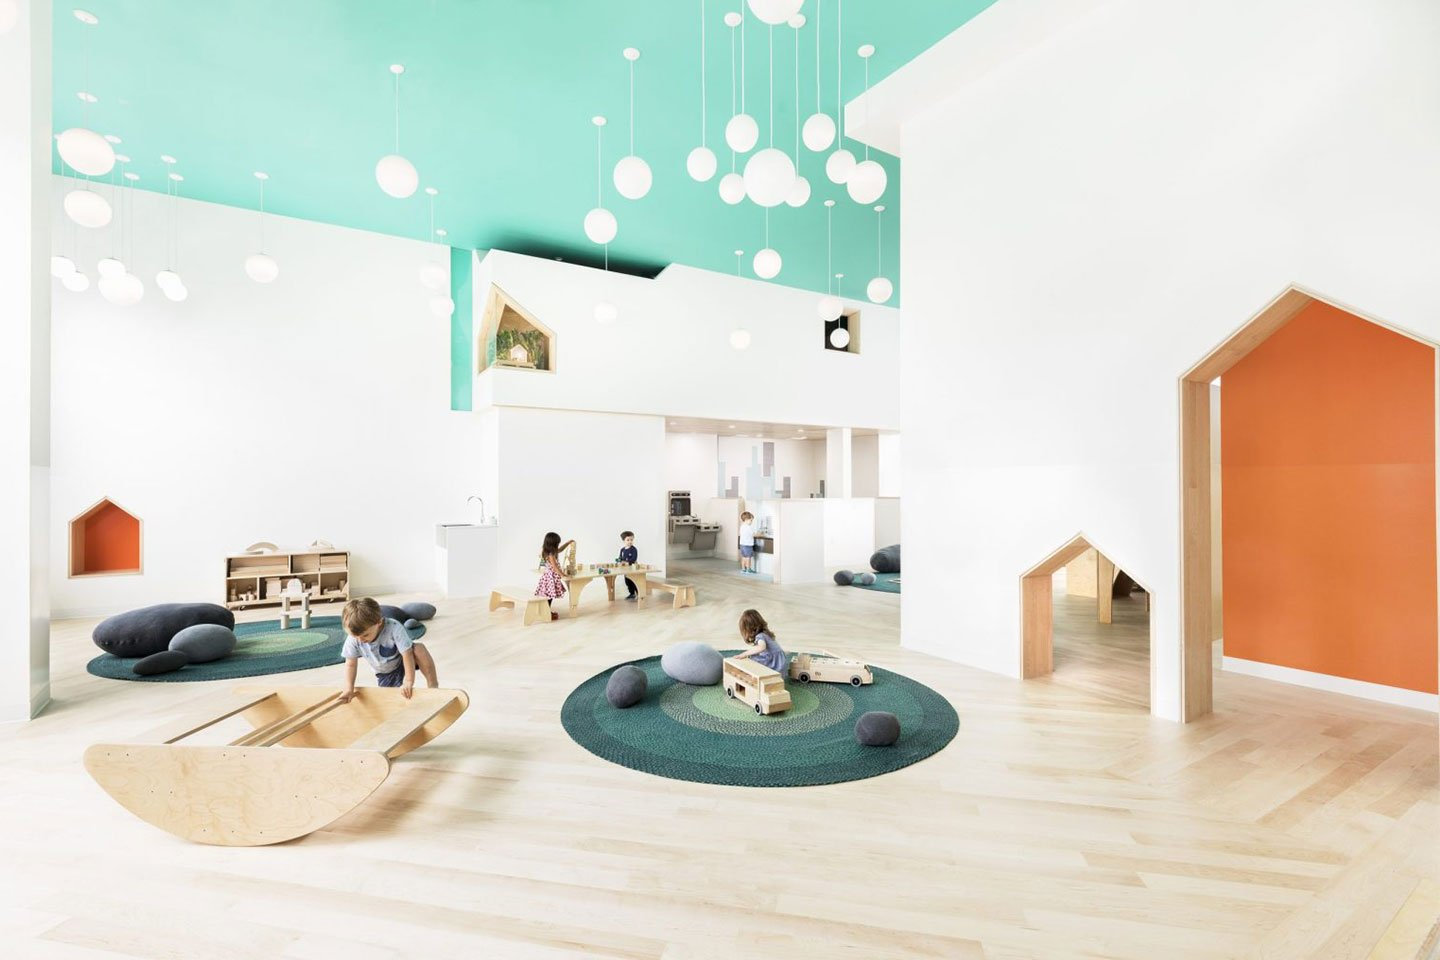 Mi Casita Preschool and Cultural Center di Brooklyn